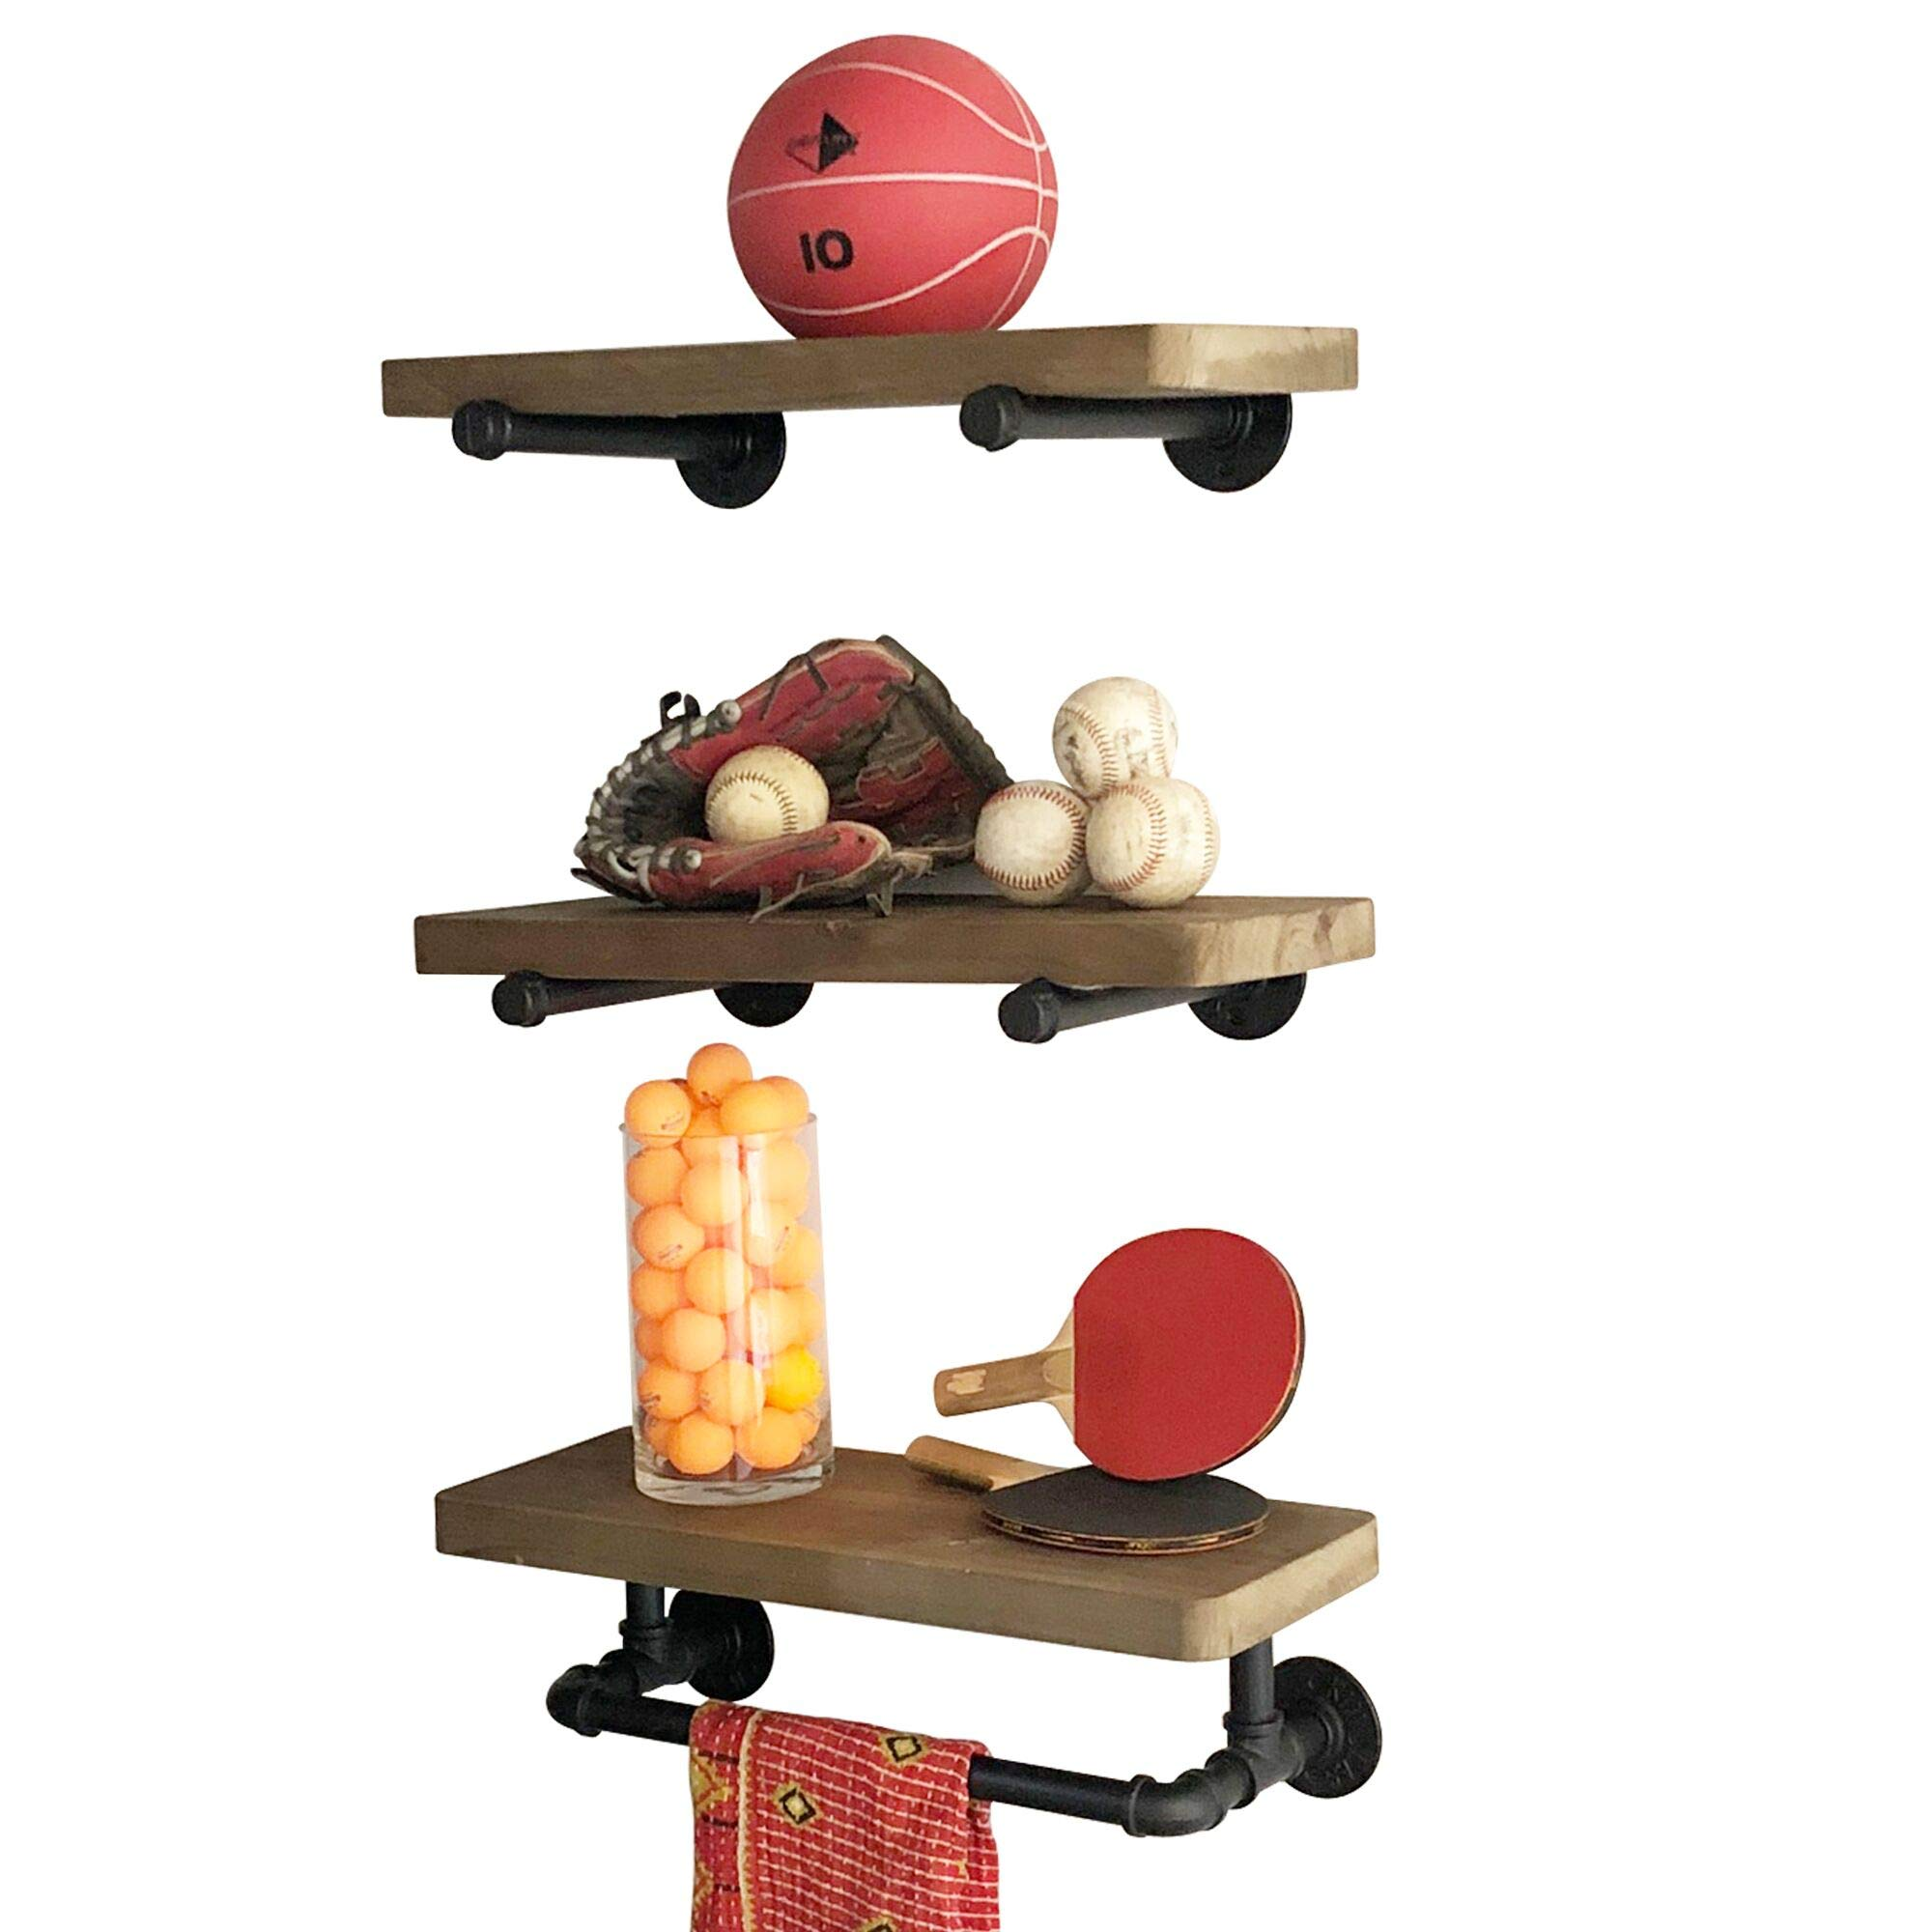 Industrial Pipe Shelves with Towel Rack: DIY Floating Wood Shelves and Metal Bracket Pipes - Rustic Mounted Wall Shelf for Bathroom, Kitchen, Living Room, Bedroom - Decorative Farmhouse Shelving Units by Olillo